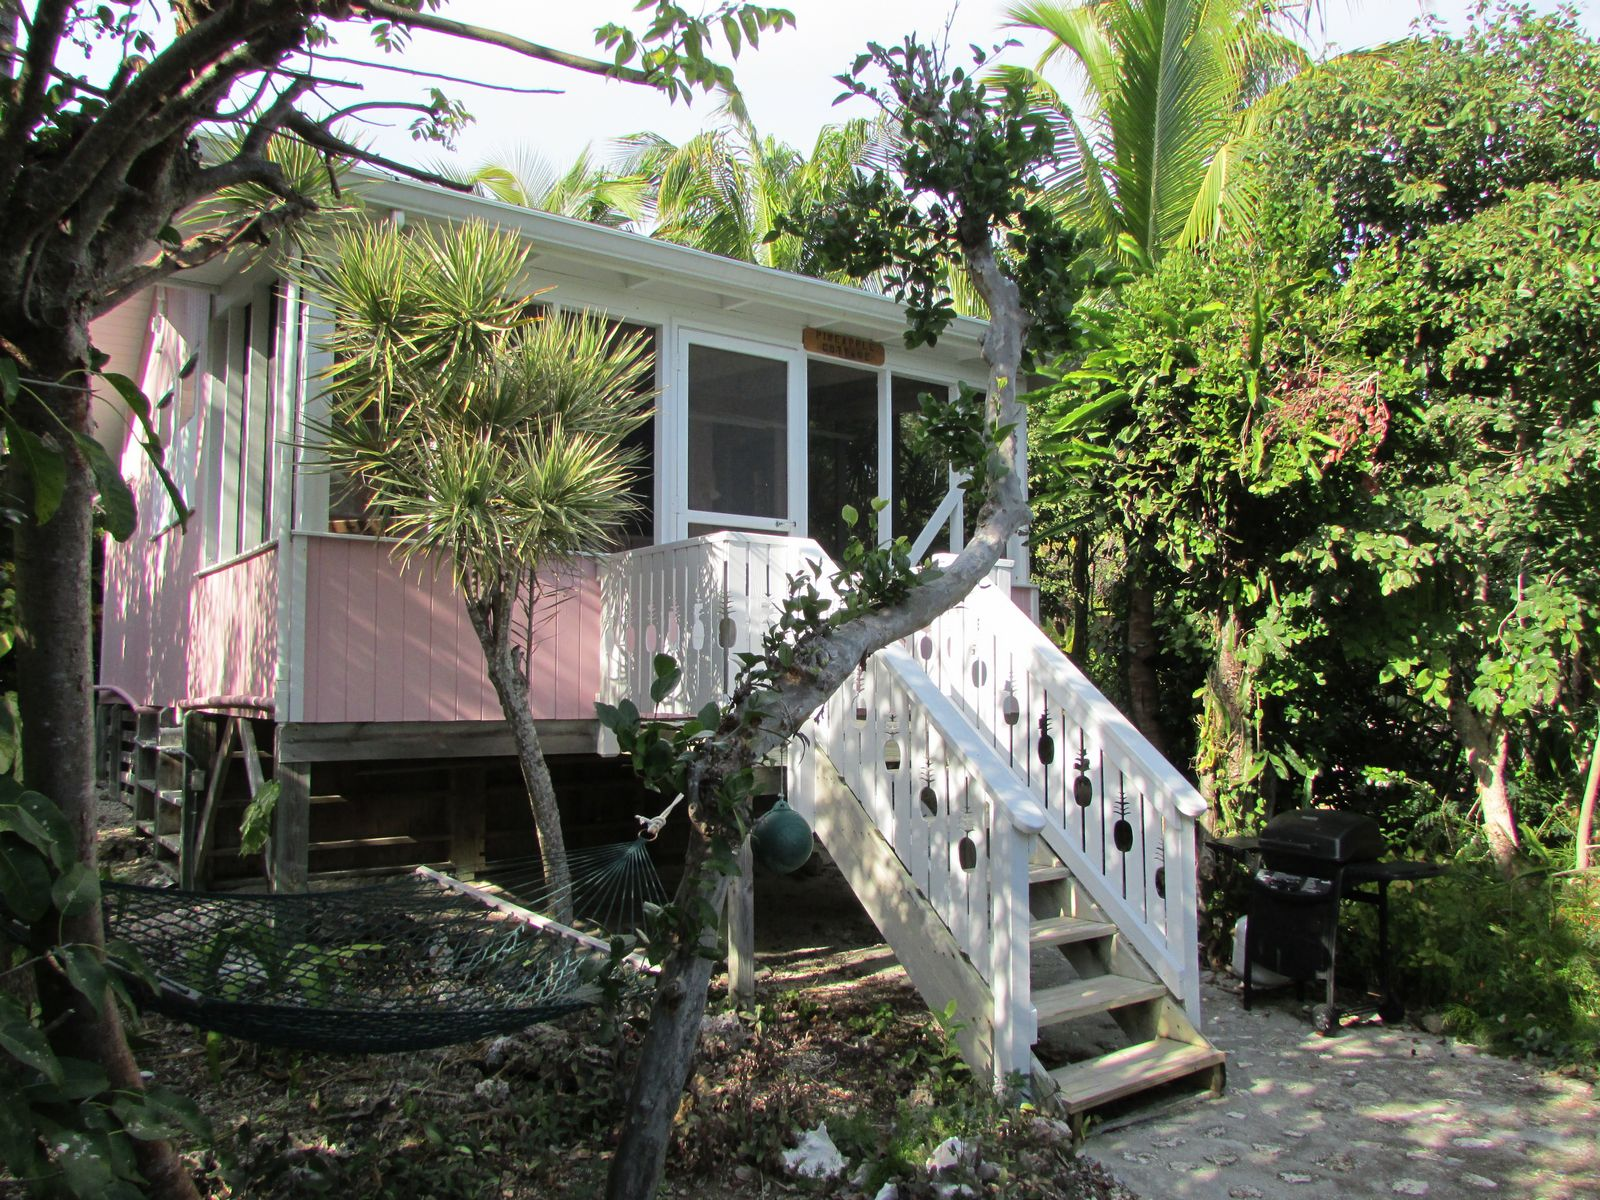 Single Family Home for Sale at Pineapple Cottage Abaco Ocean Club, Lubbers Quarters, Abaco Bahamas